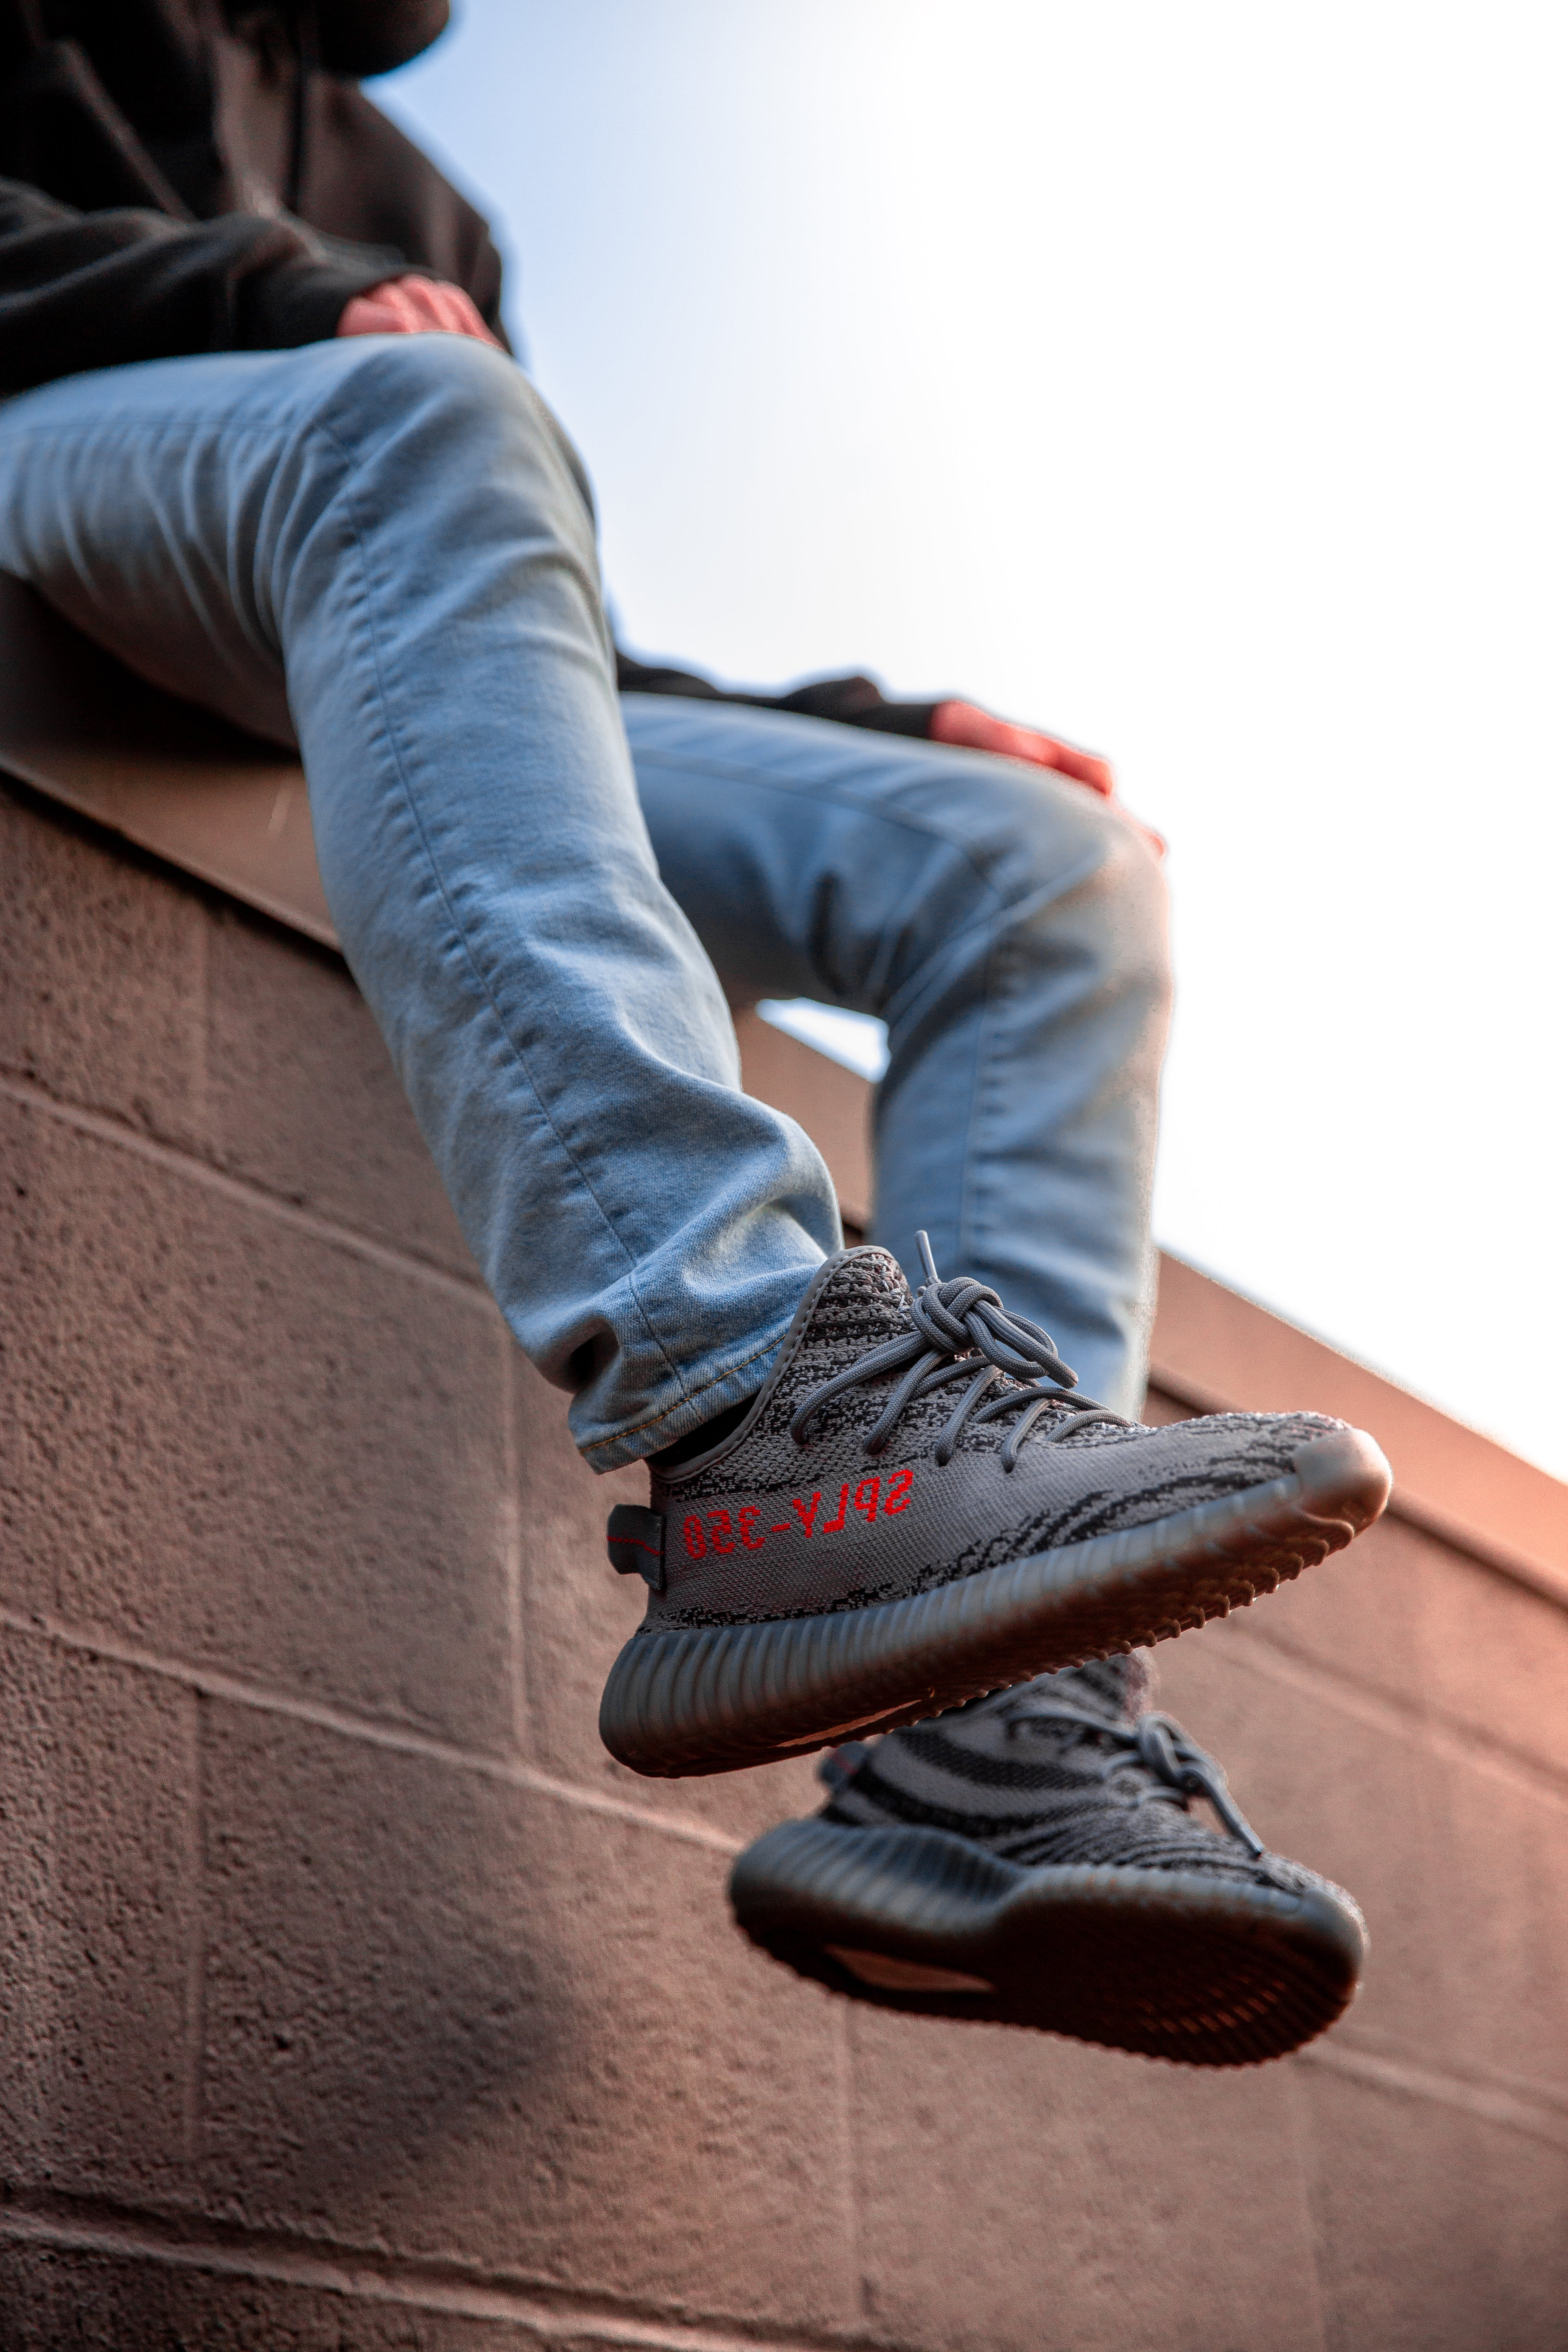 Person Wearing Adidas Yeezy Boost Shoes